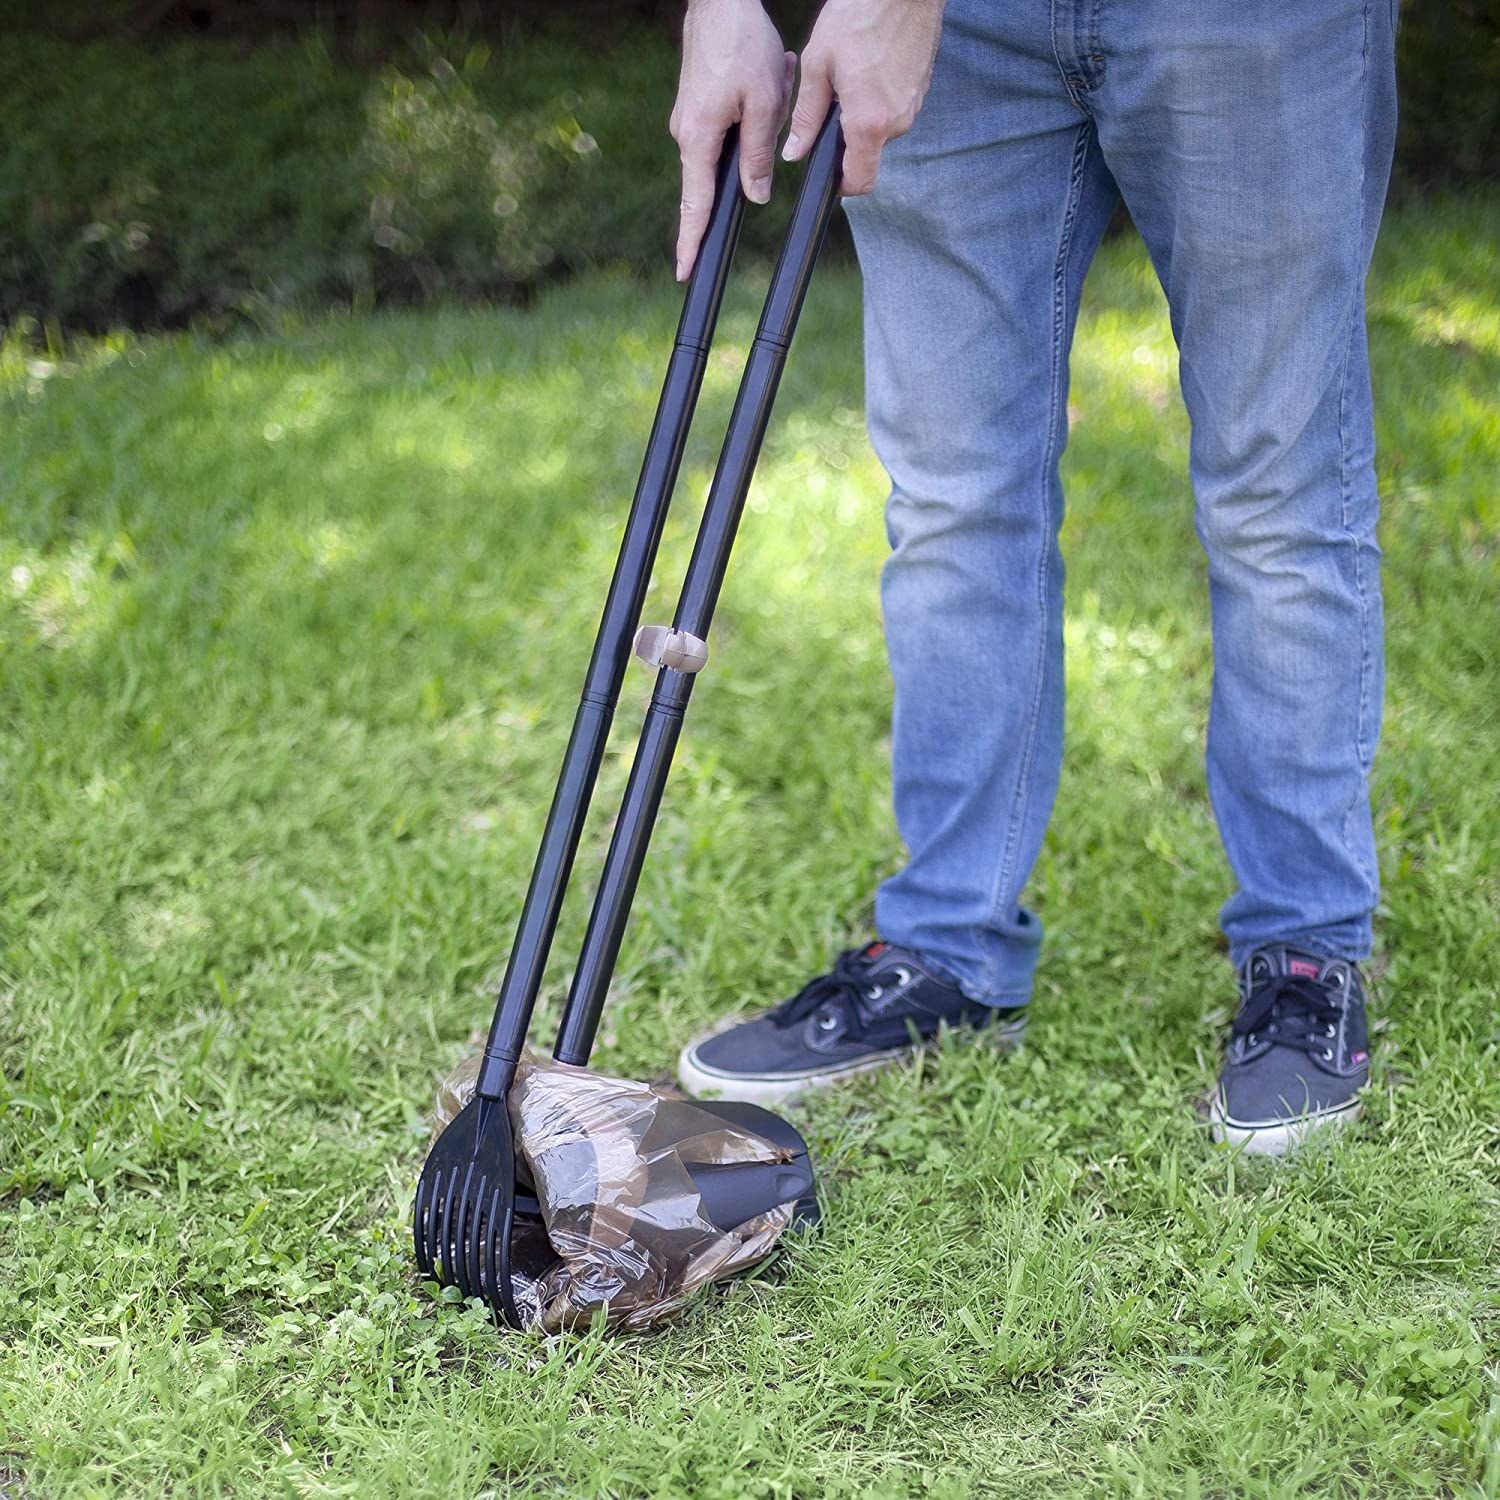 Person using the scooper covered in a bag and the rake